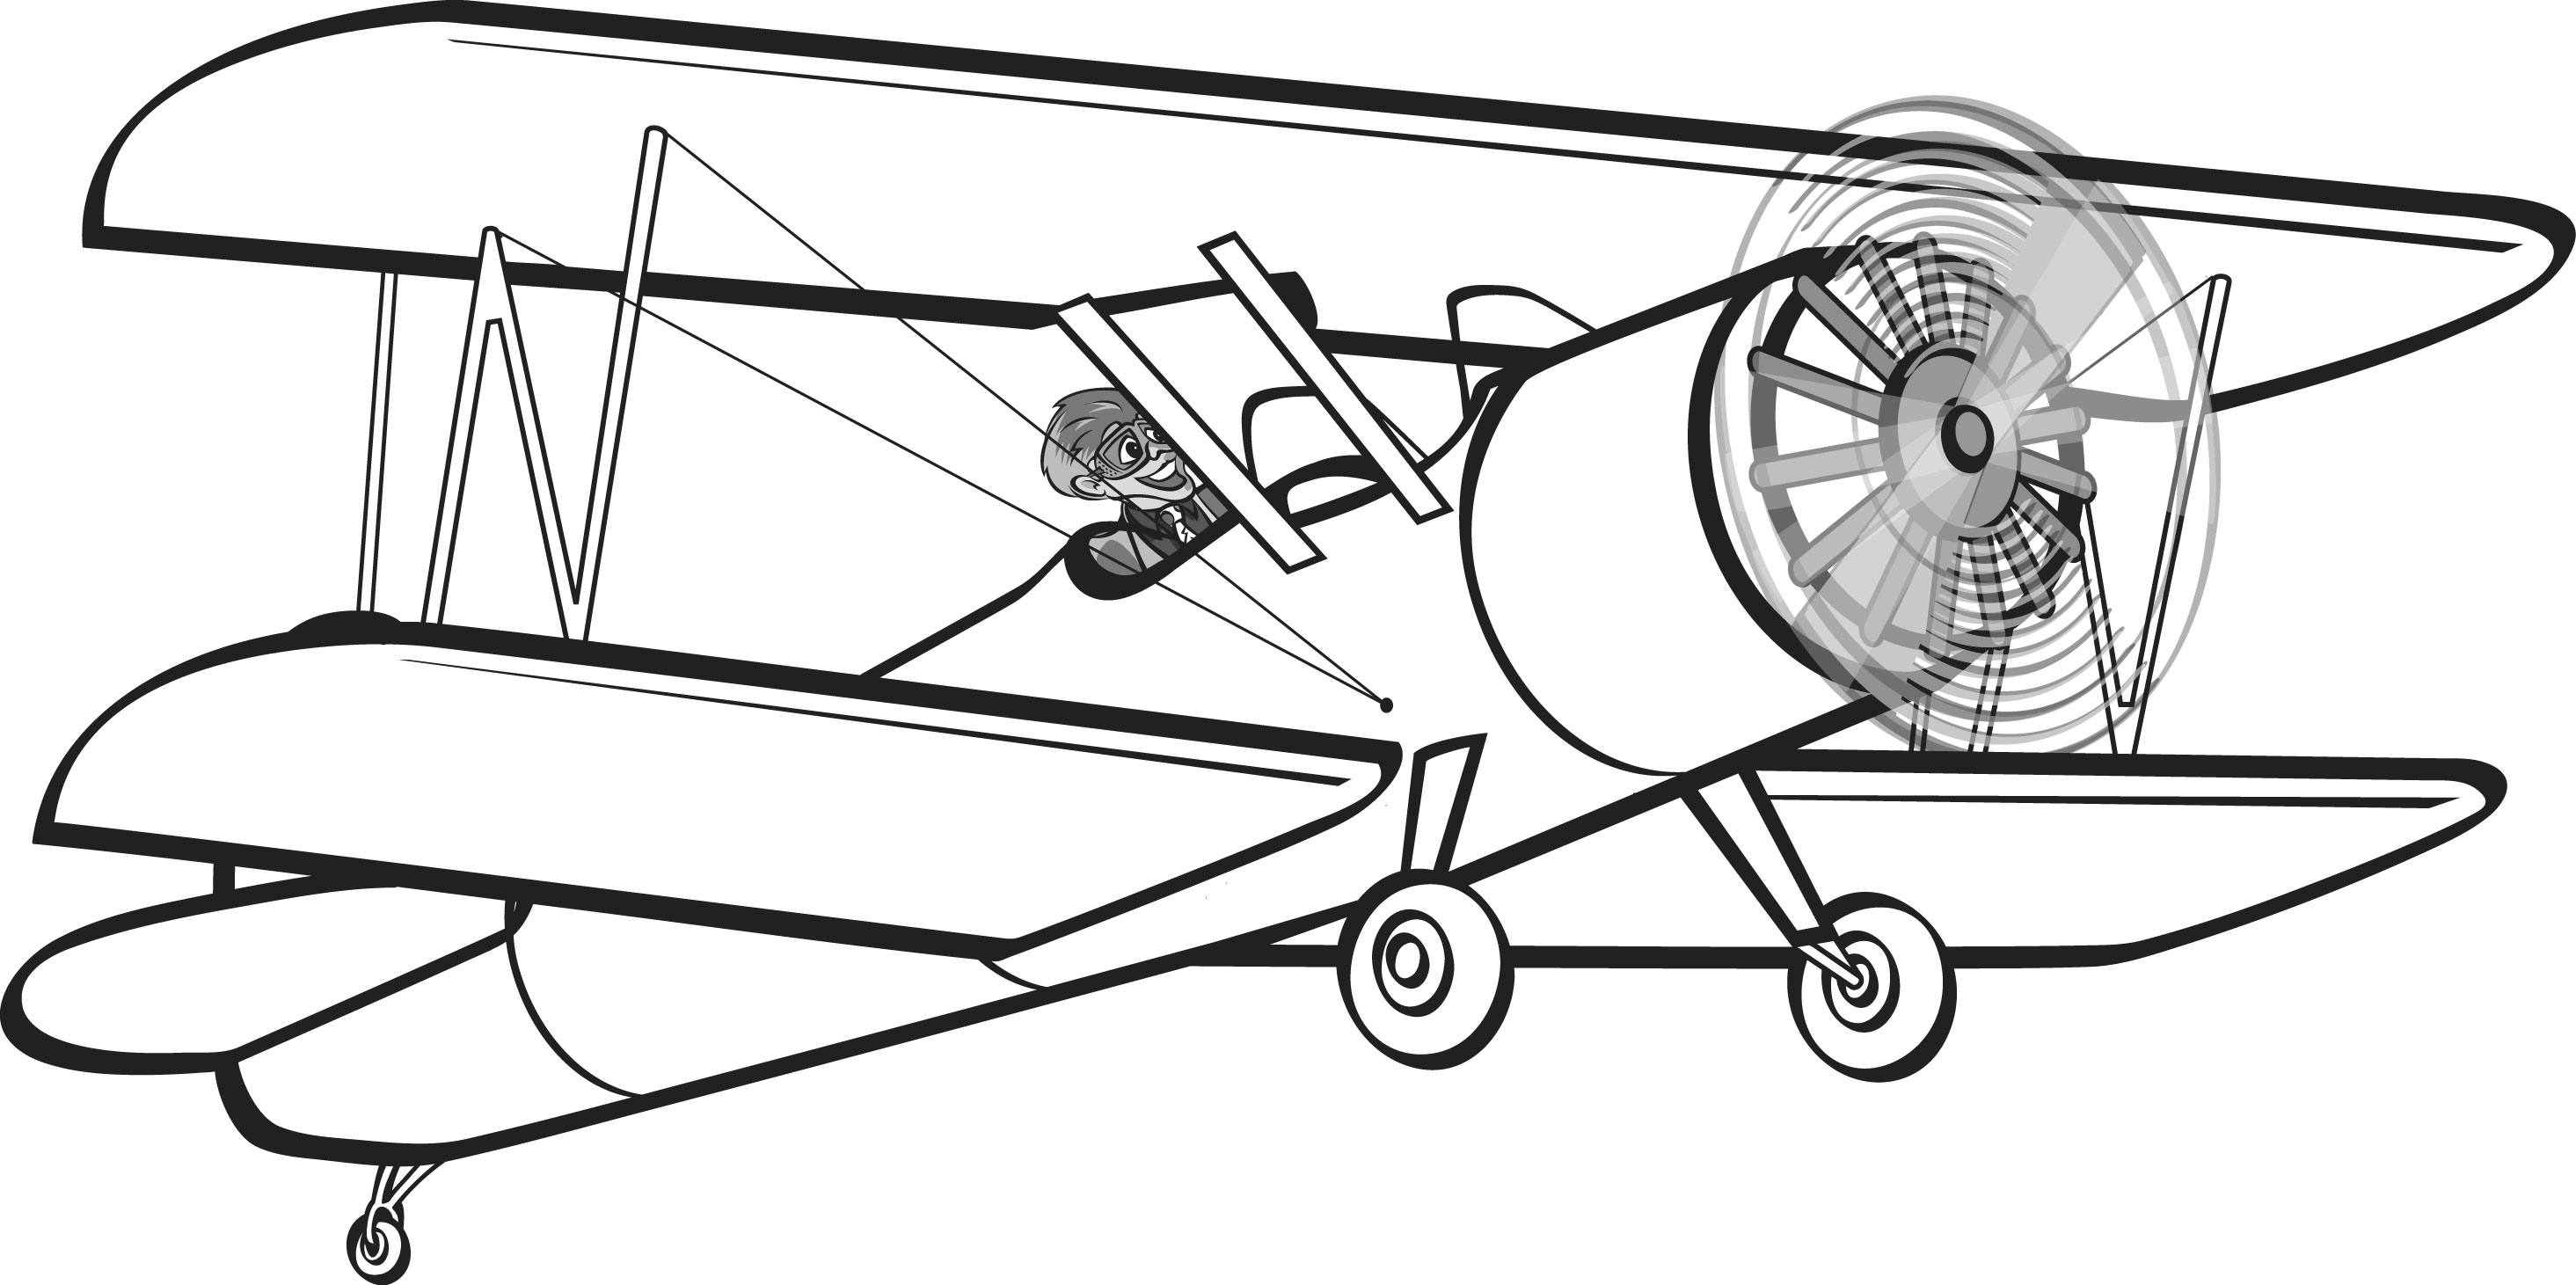 Black and white old fashioned airplane drawing clipart transparent stock Free Biplane Cliparts, Download Free Clip Art, Free Clip Art on ... transparent stock